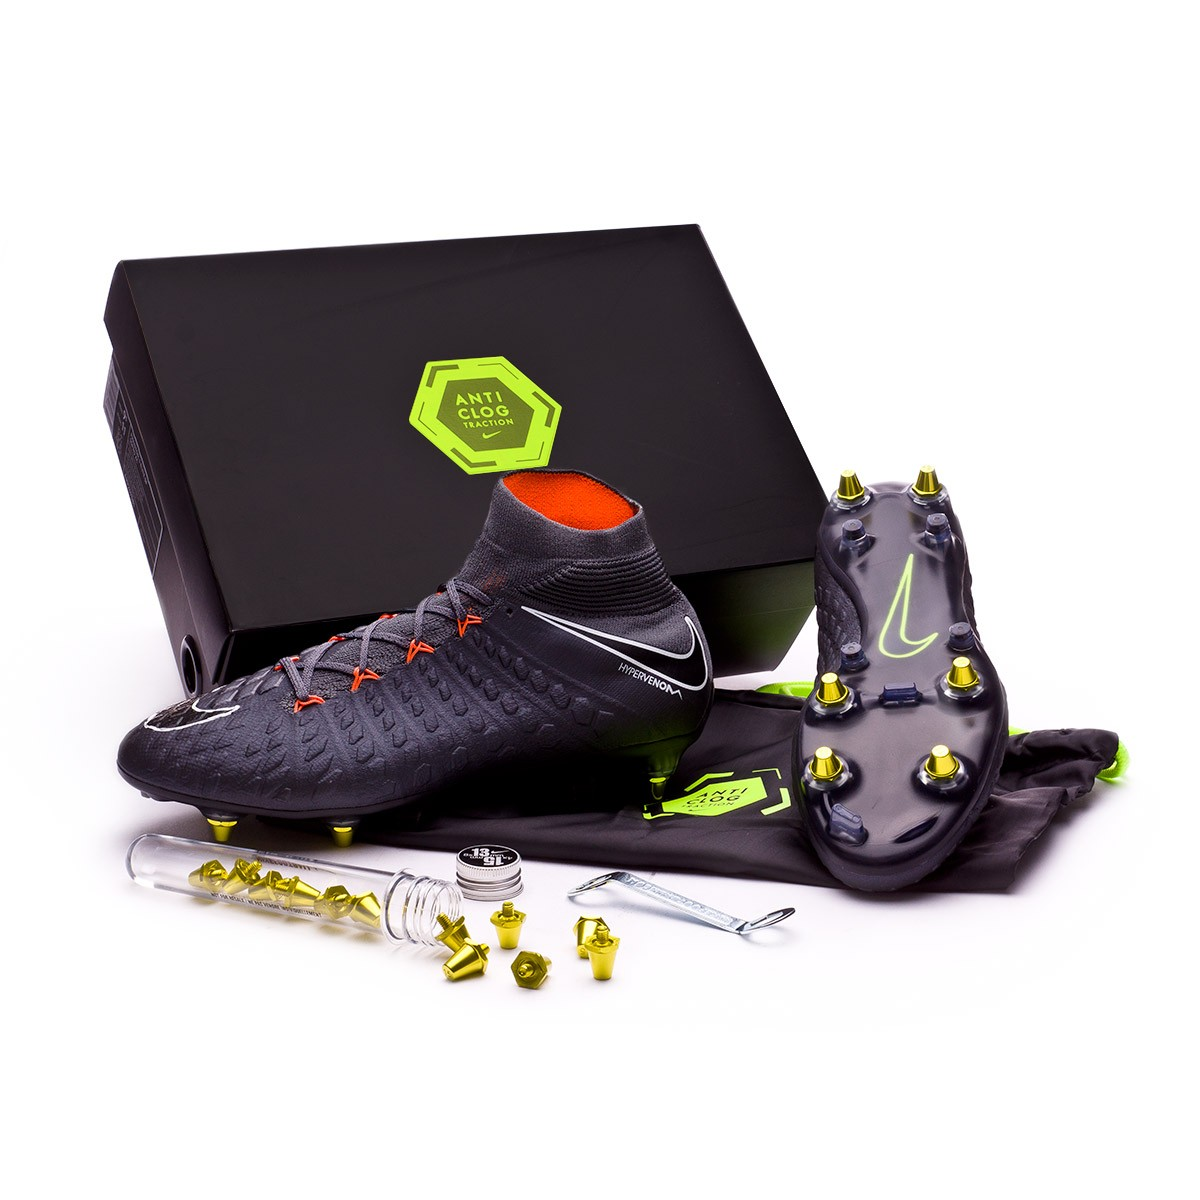 b83f60fbf63 Football Boots Nike Hypervenom Phantom III Elite DF SG-Pro Anti-Clog ...